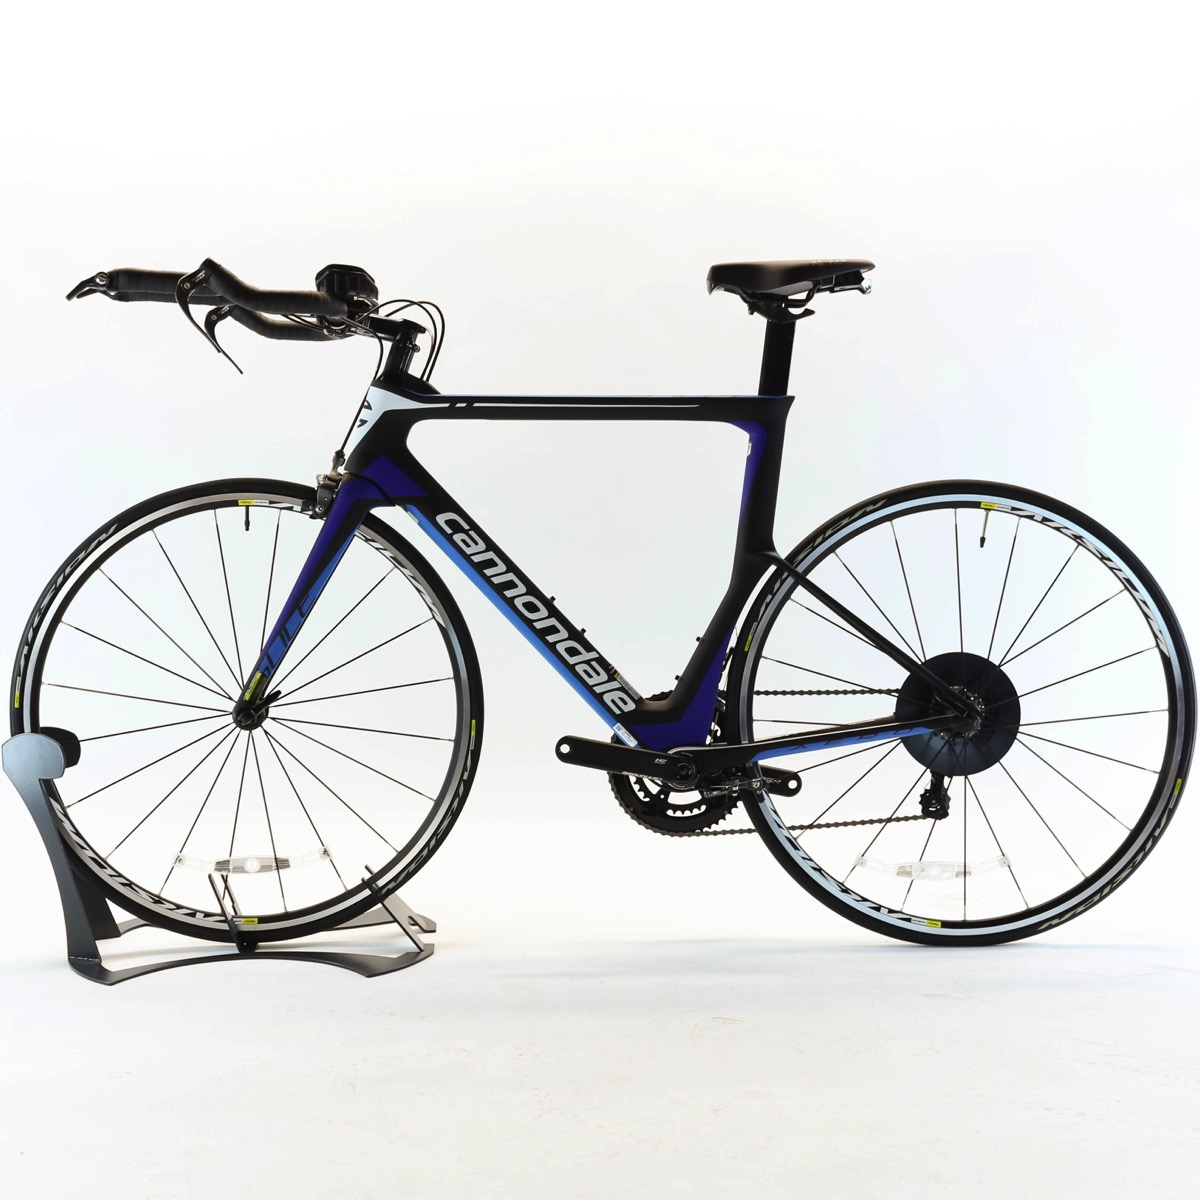 Cannondale 2017 Slice Ultegra Size 57cm Blue/Black Triathlon/Time Trial Bike